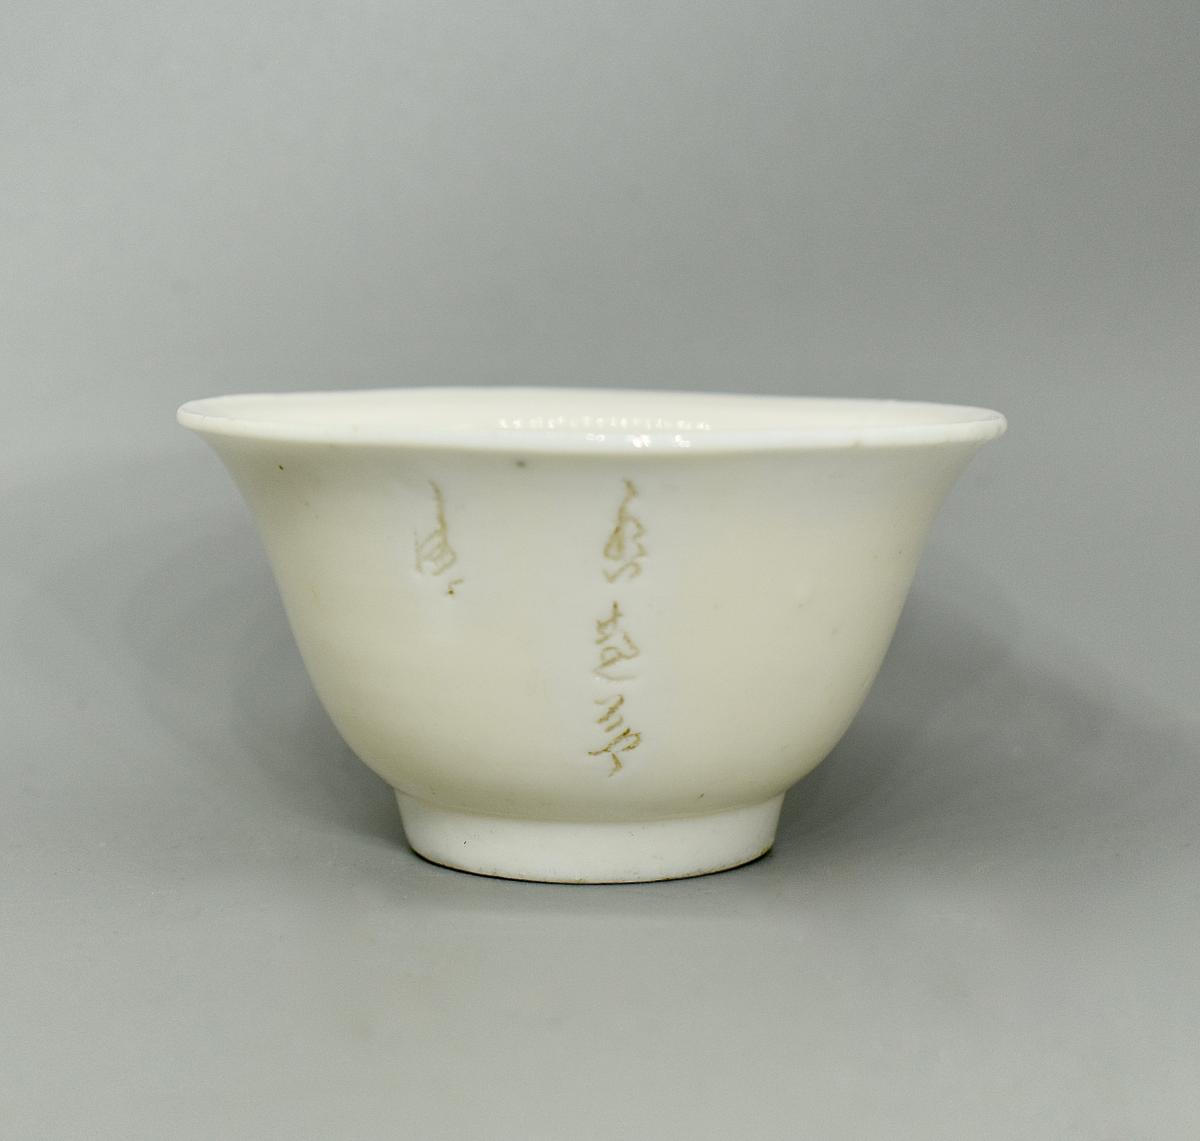 An Inscribed Blanc de Chine Cup